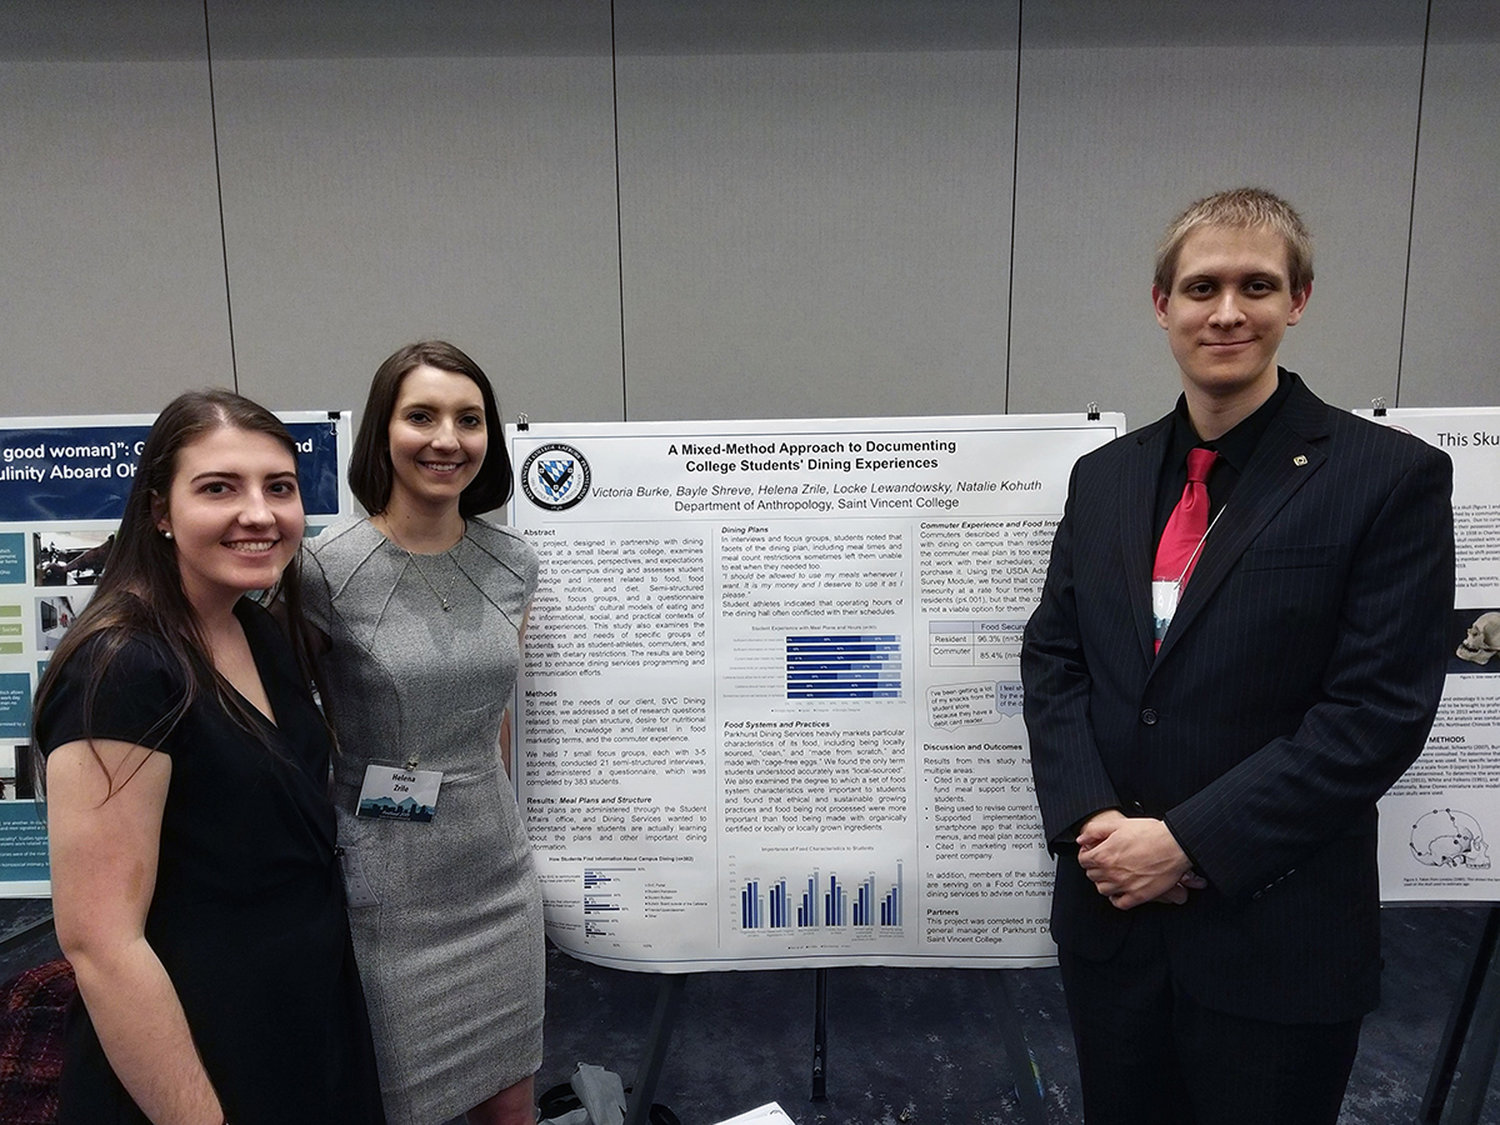 Victoria Burke, from left, Helena Zrile and Locke Lewandosky with one of their two poster boards presented at the Society for Applied Anthropology conference in March.